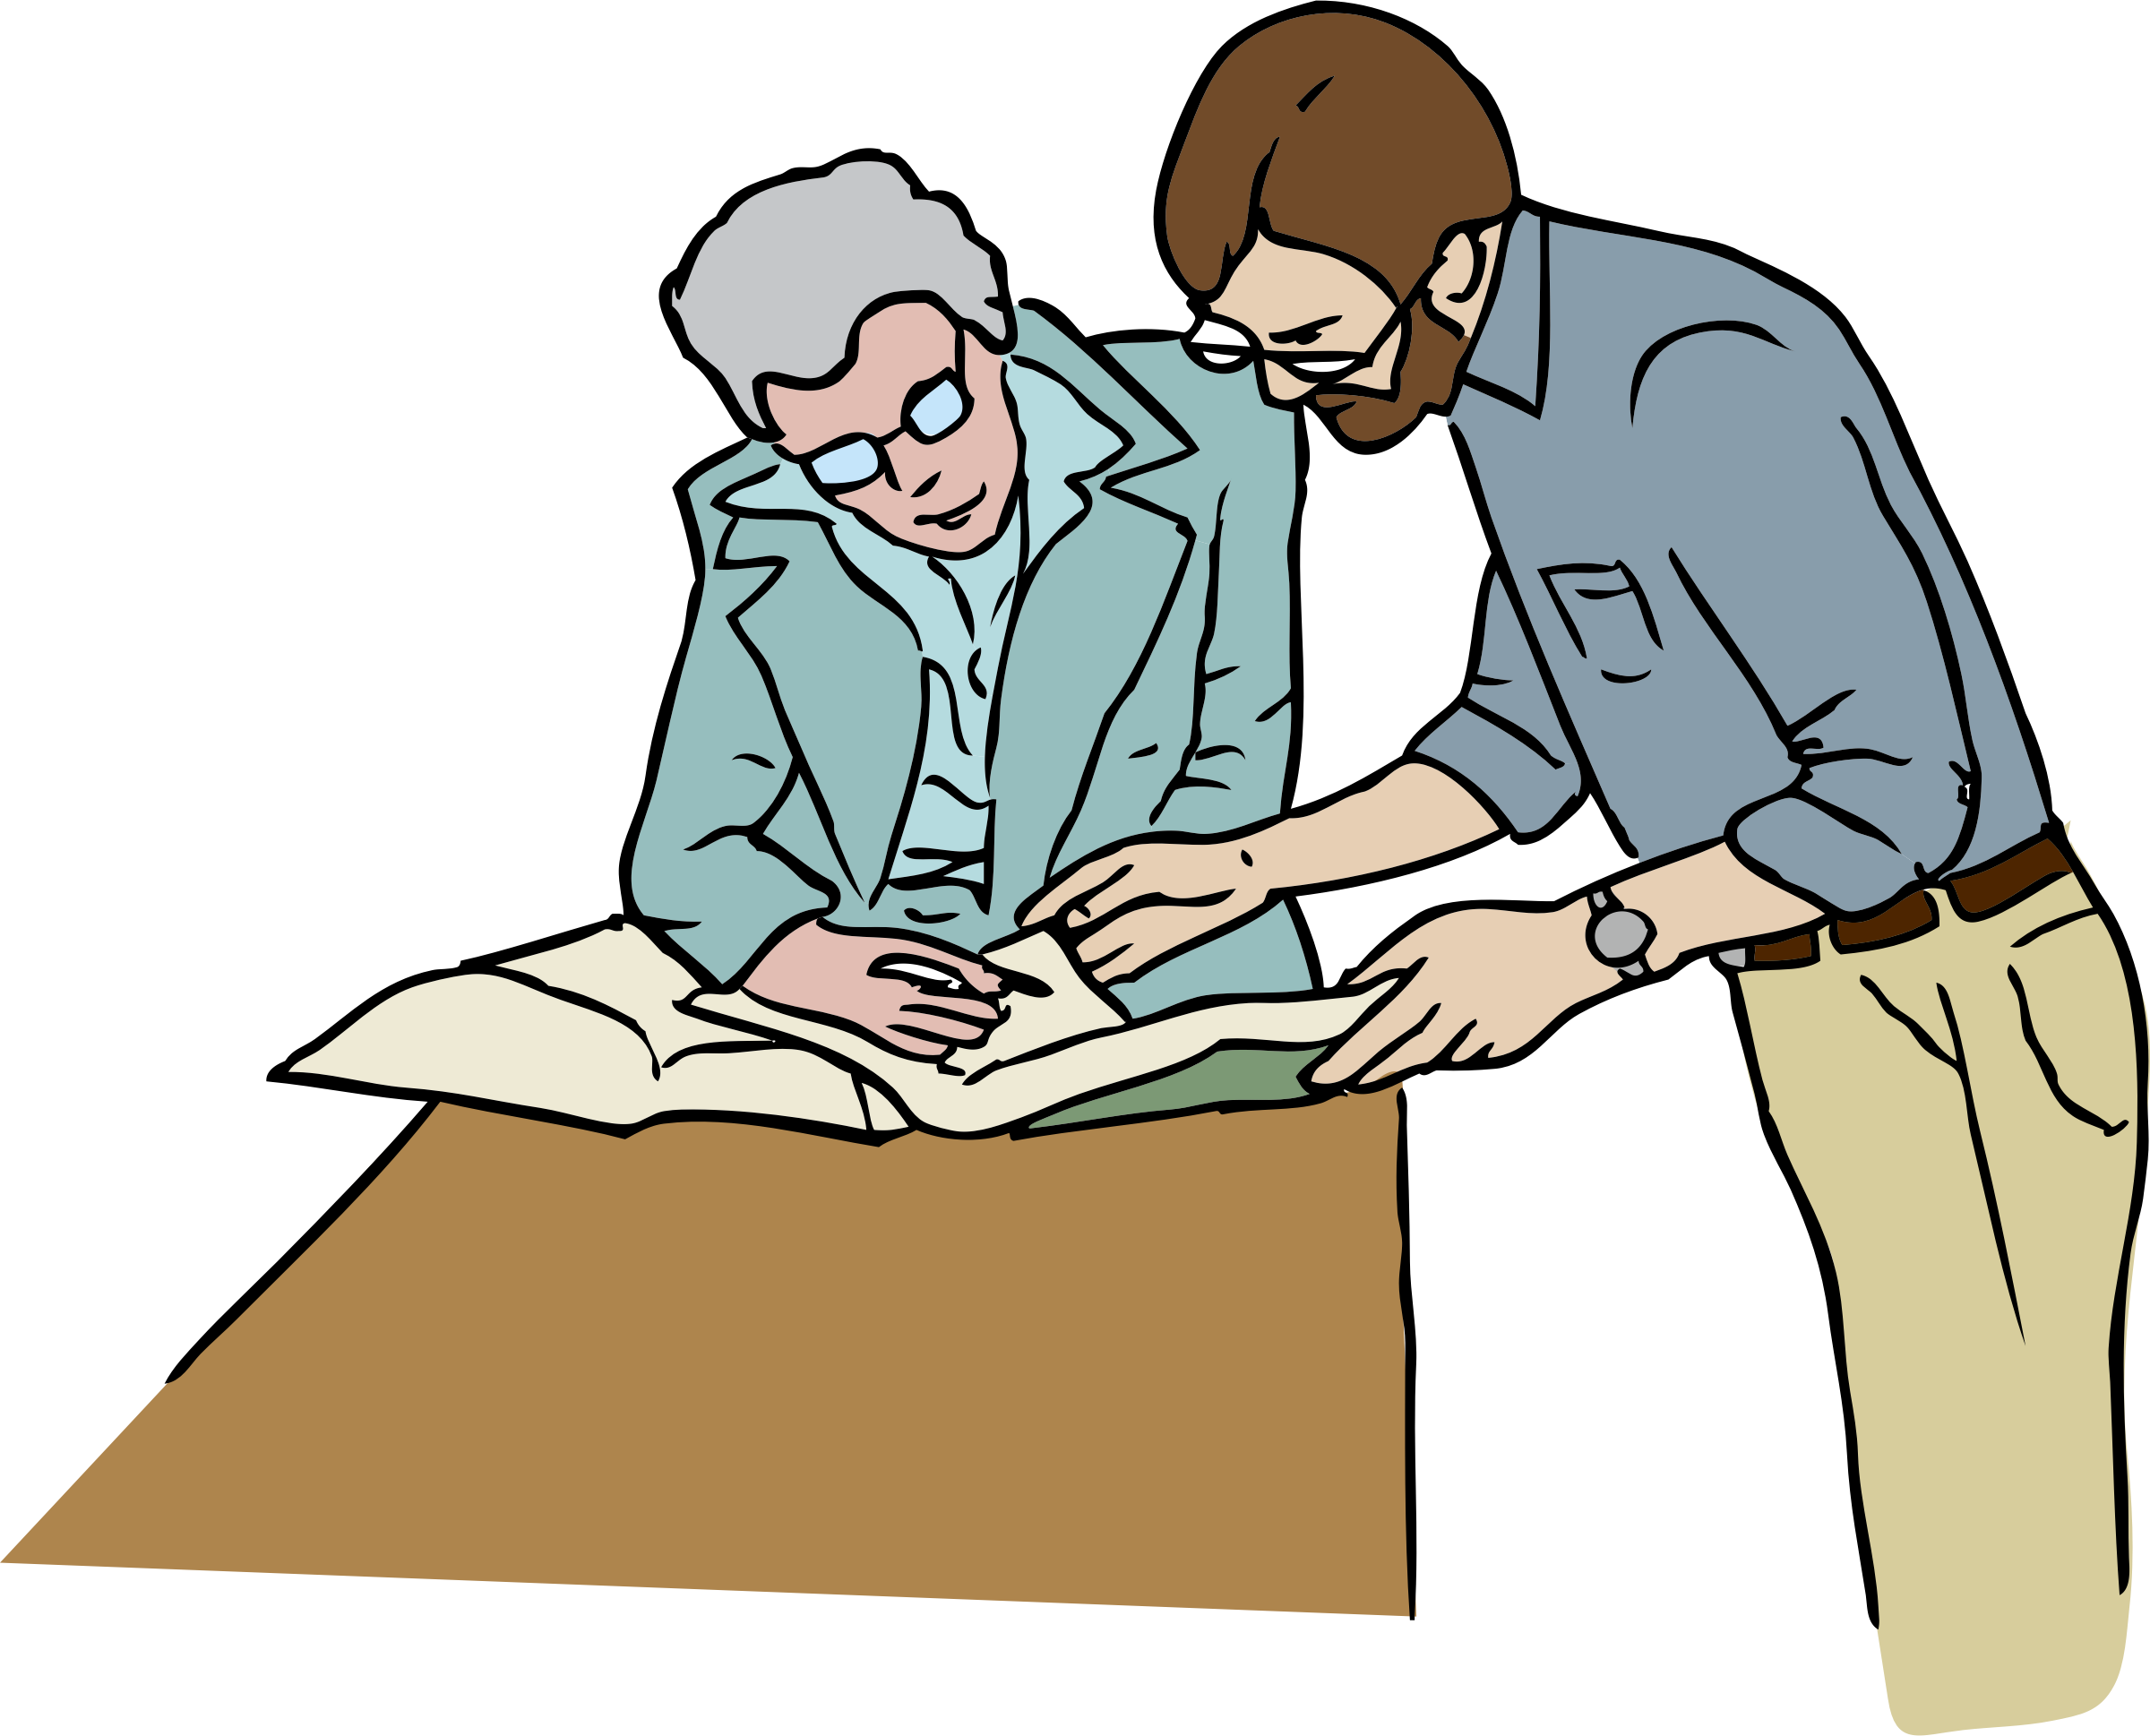 library Library clipart reference book. Desk big image png.